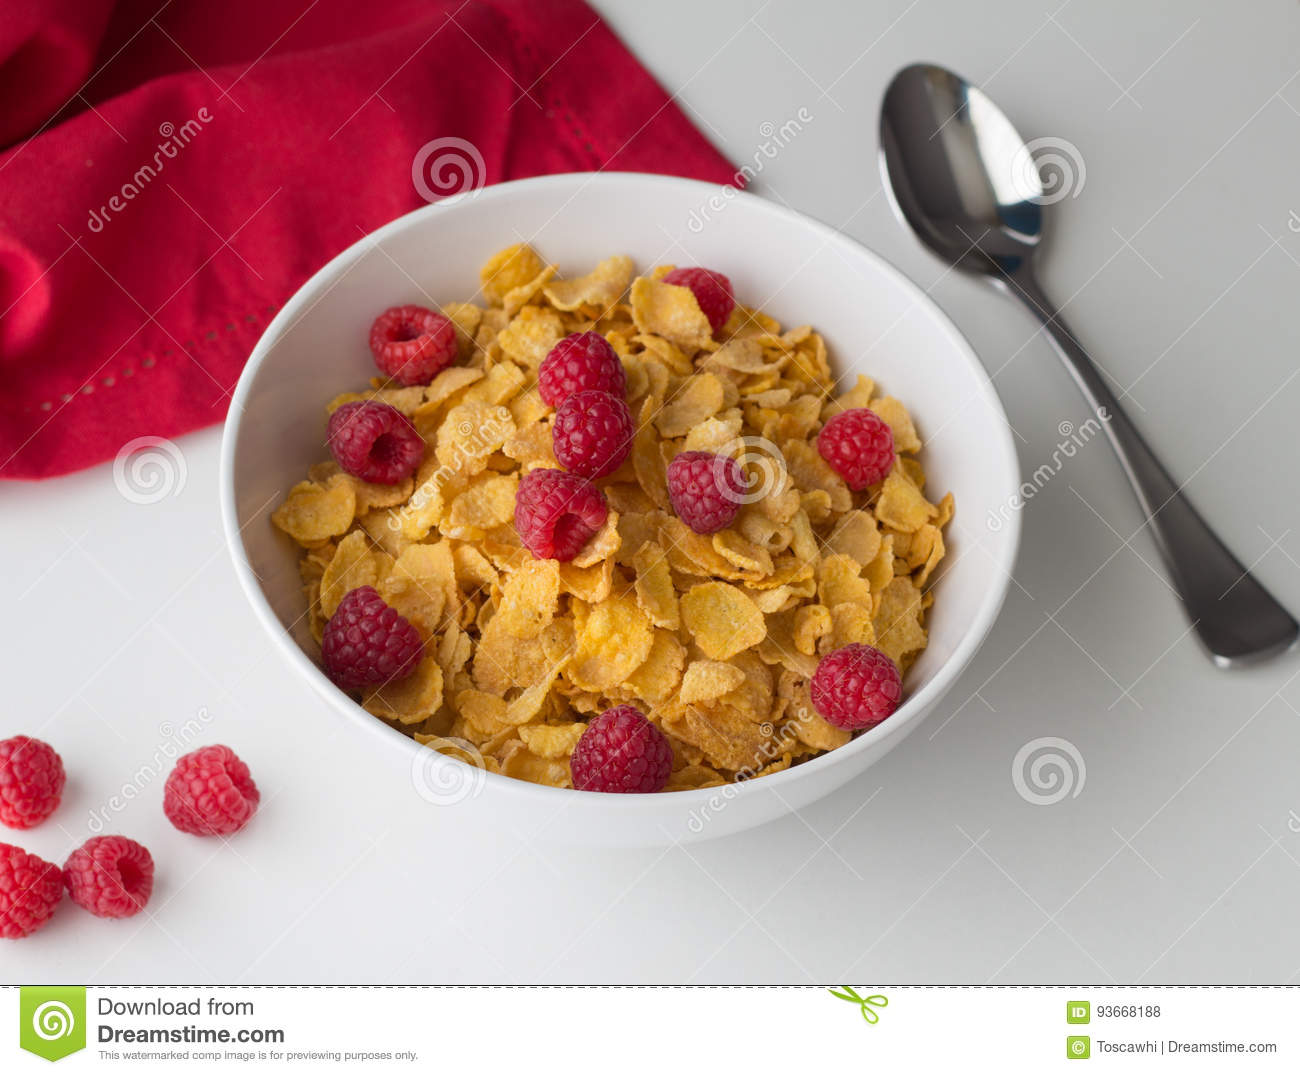 Cornflakes Breakfast Cereal With Raspberries In Bowl On ...